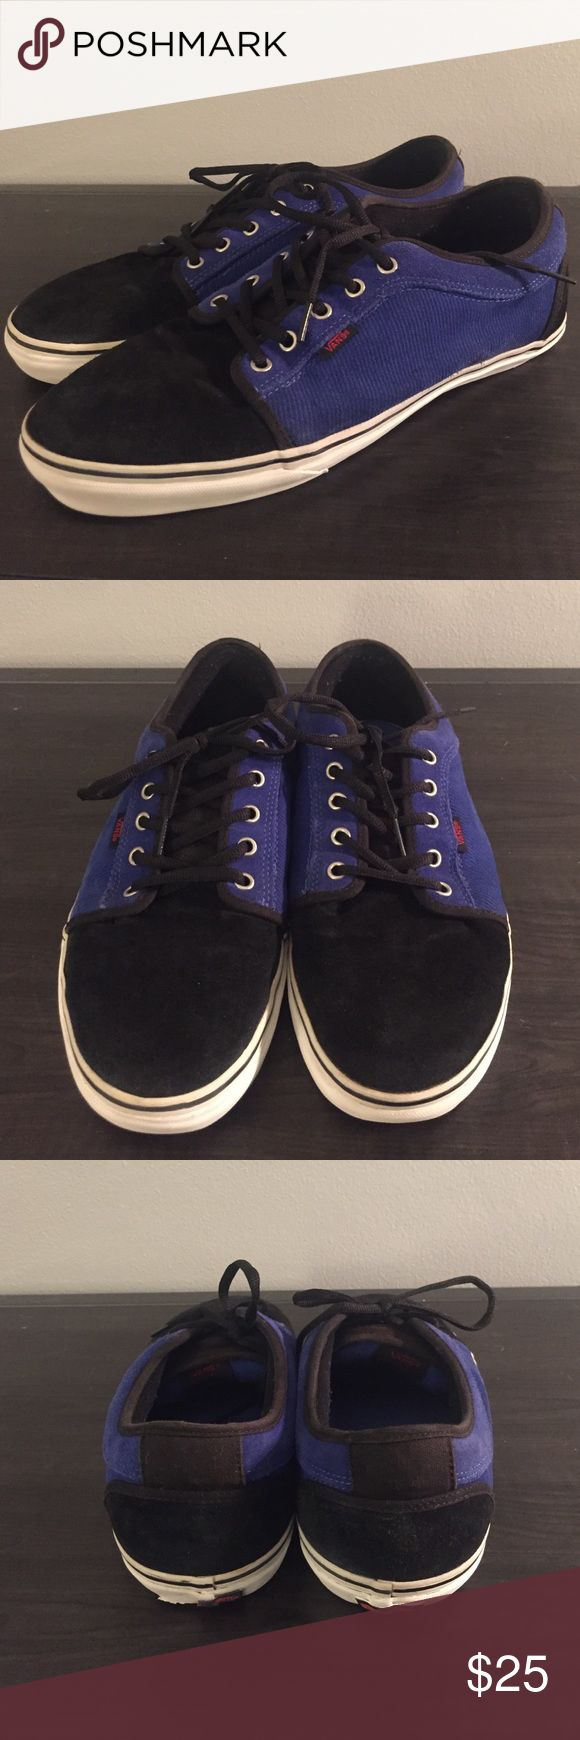 Vans Chukka Low Black & Royal Corduroy Skate Vans Chukka Low Black & Royal Skate with suede and corduroy two-toned fabric. Still in good condition! Very thick, sturdy shoe. Taking best offers! ☺️ Vans Shoes Sneakers